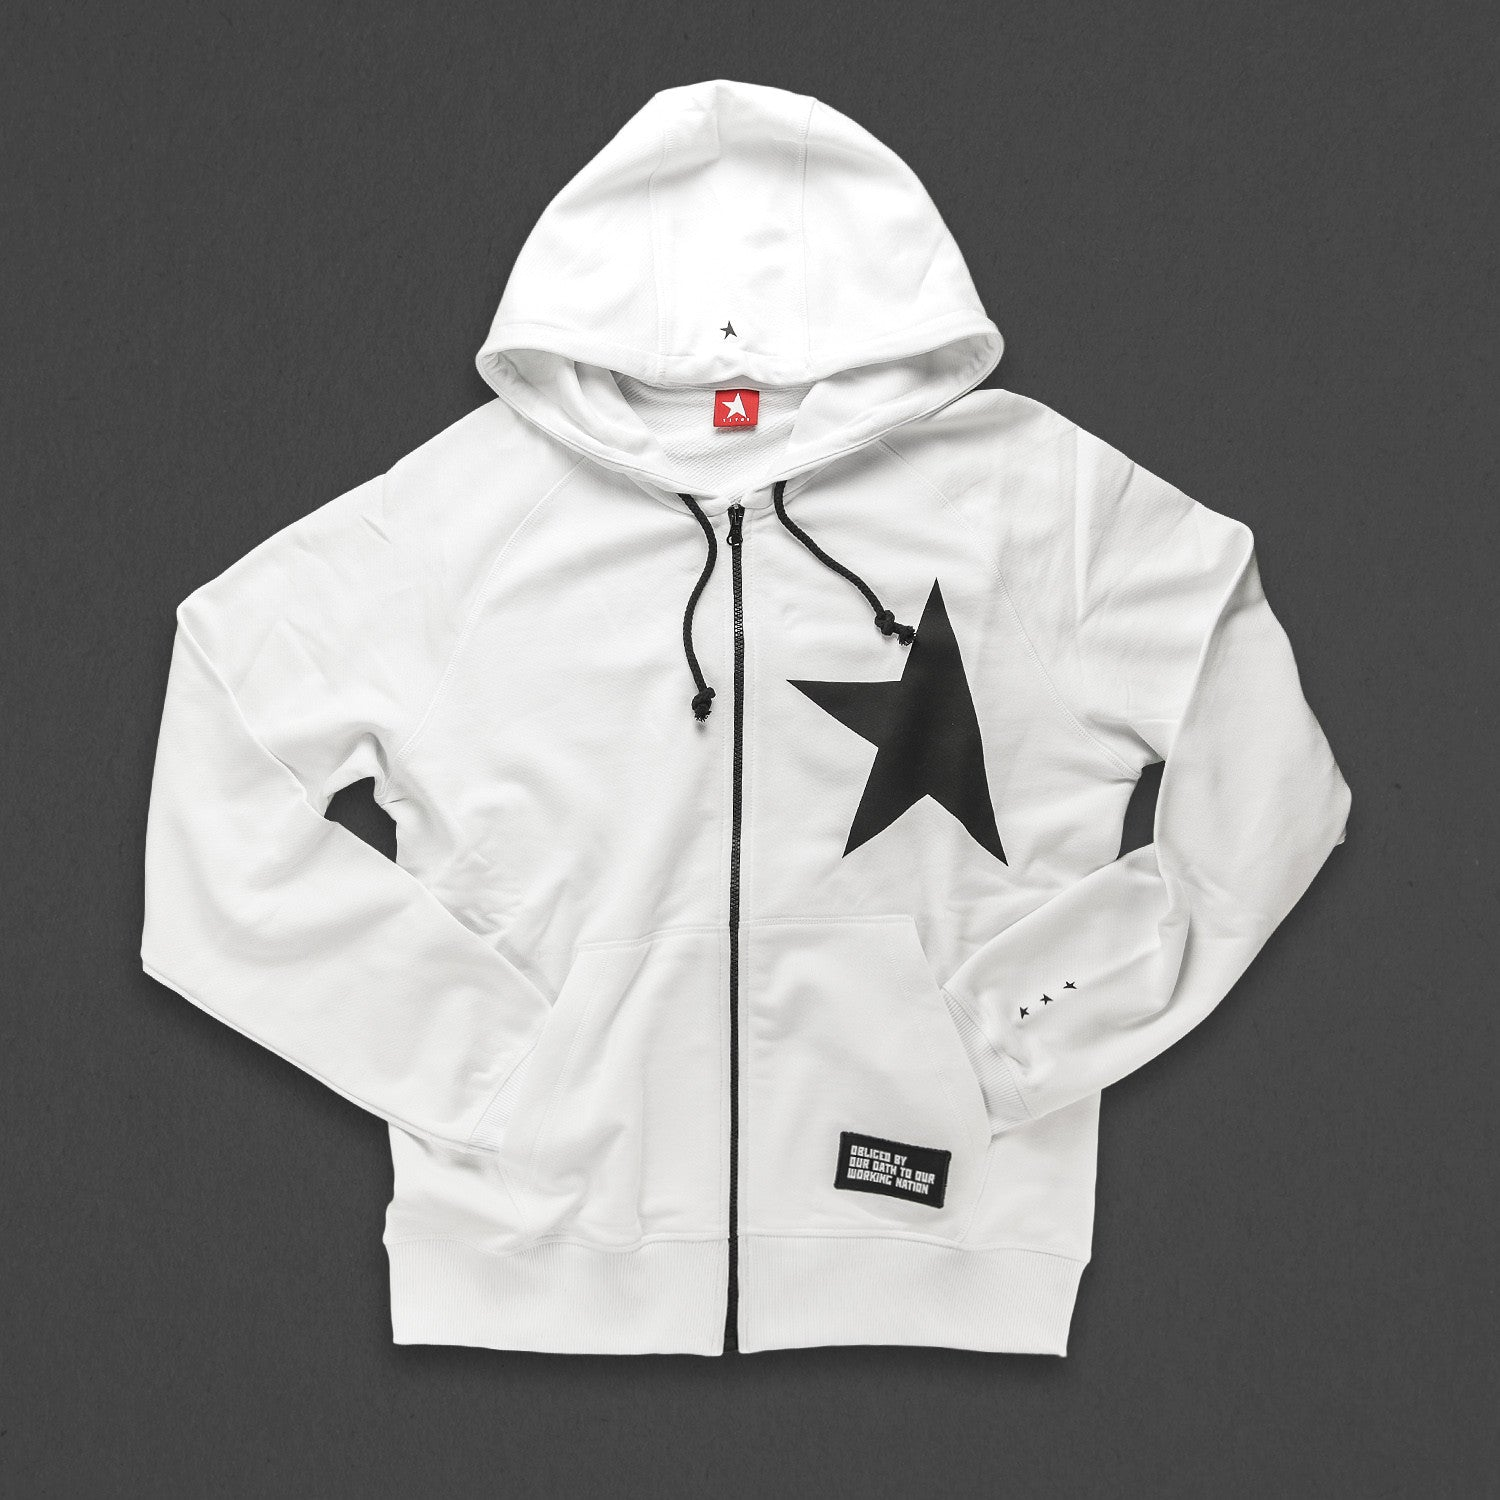 7th hoodie+zip white/black with TITOS star logo